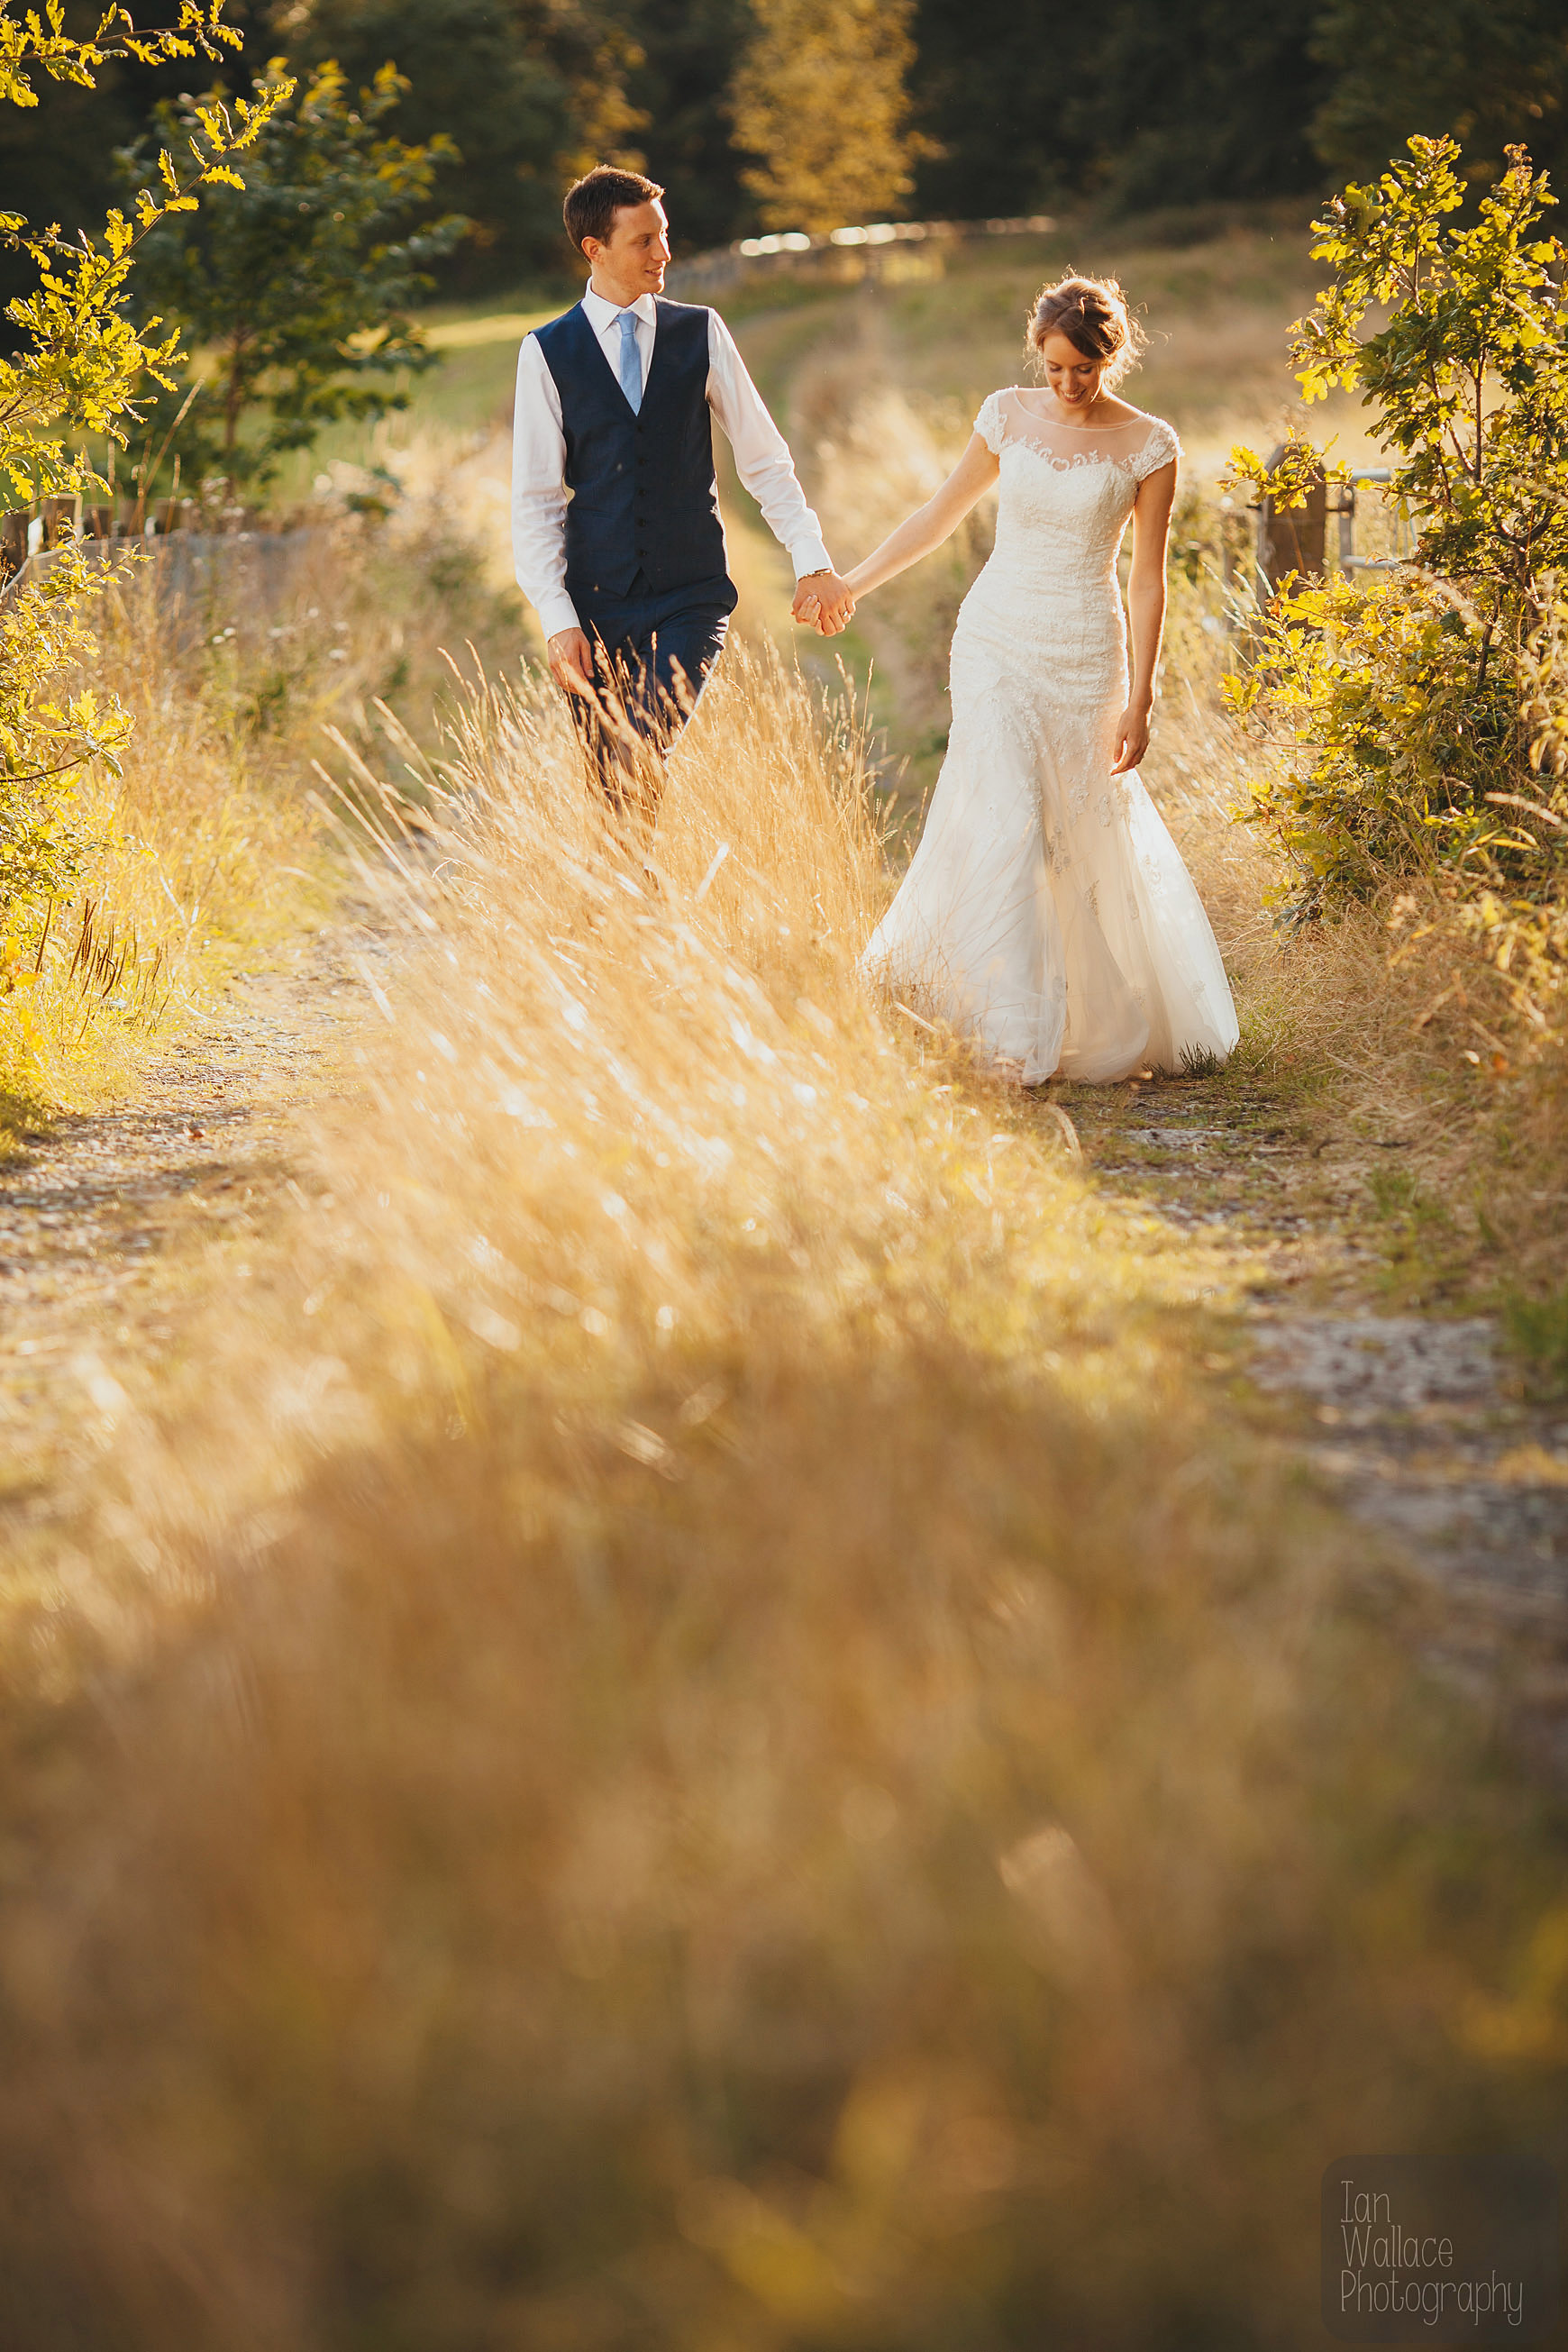 Beautifully lit portrait of newly weds walking along an overgrown dirt track.